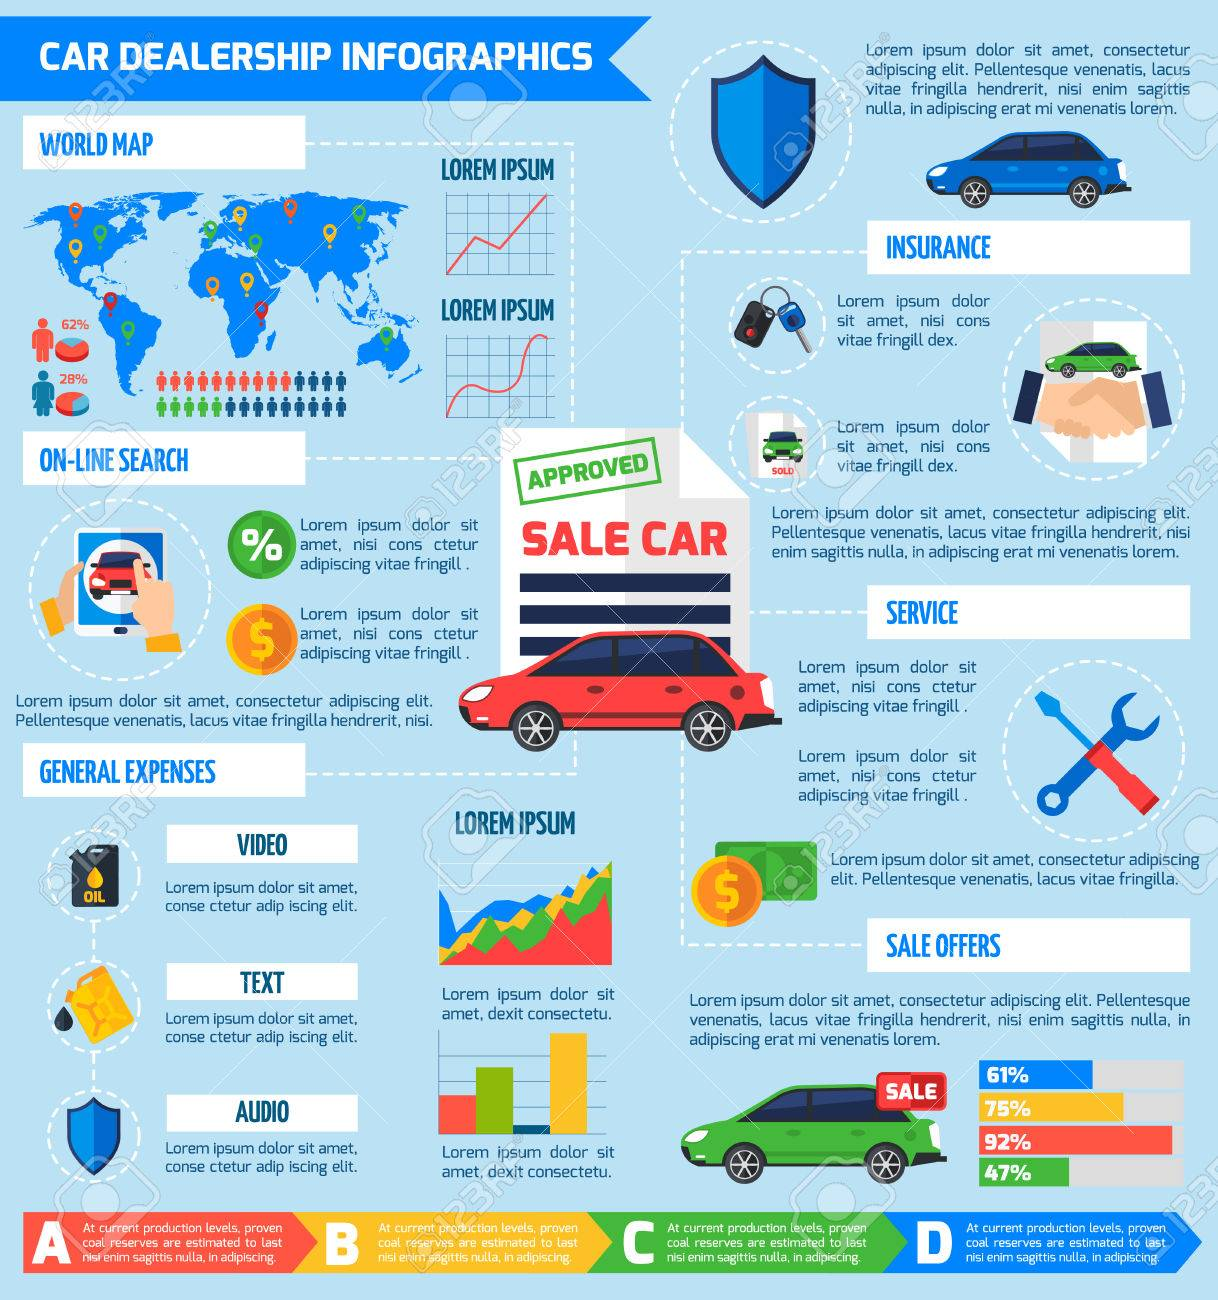 International Car Dealership Infographic Poster With Diagrams Statistics Of Choosing Buying And Payment Online Options Vector